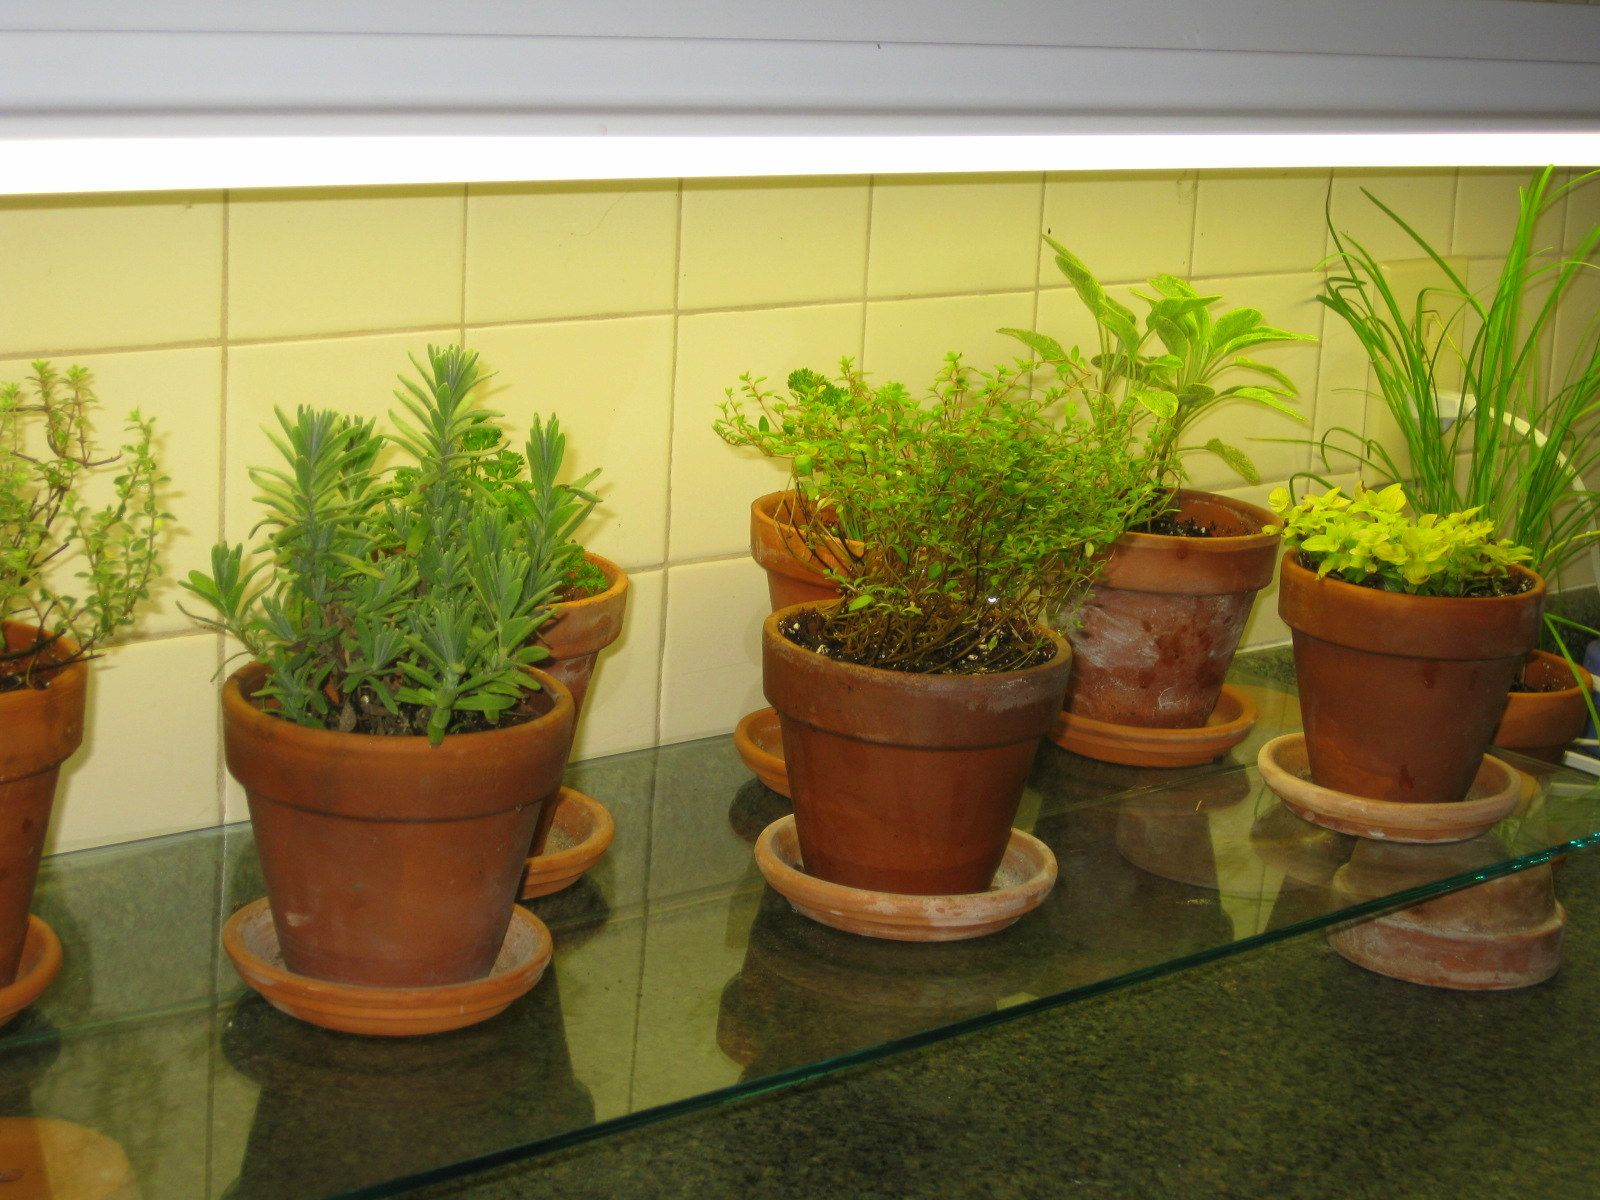 Gl Shelf Under Fluorescent Lights In Kitchen I Like The Way That It Is Suspended Off Counter By Upside Down Pots